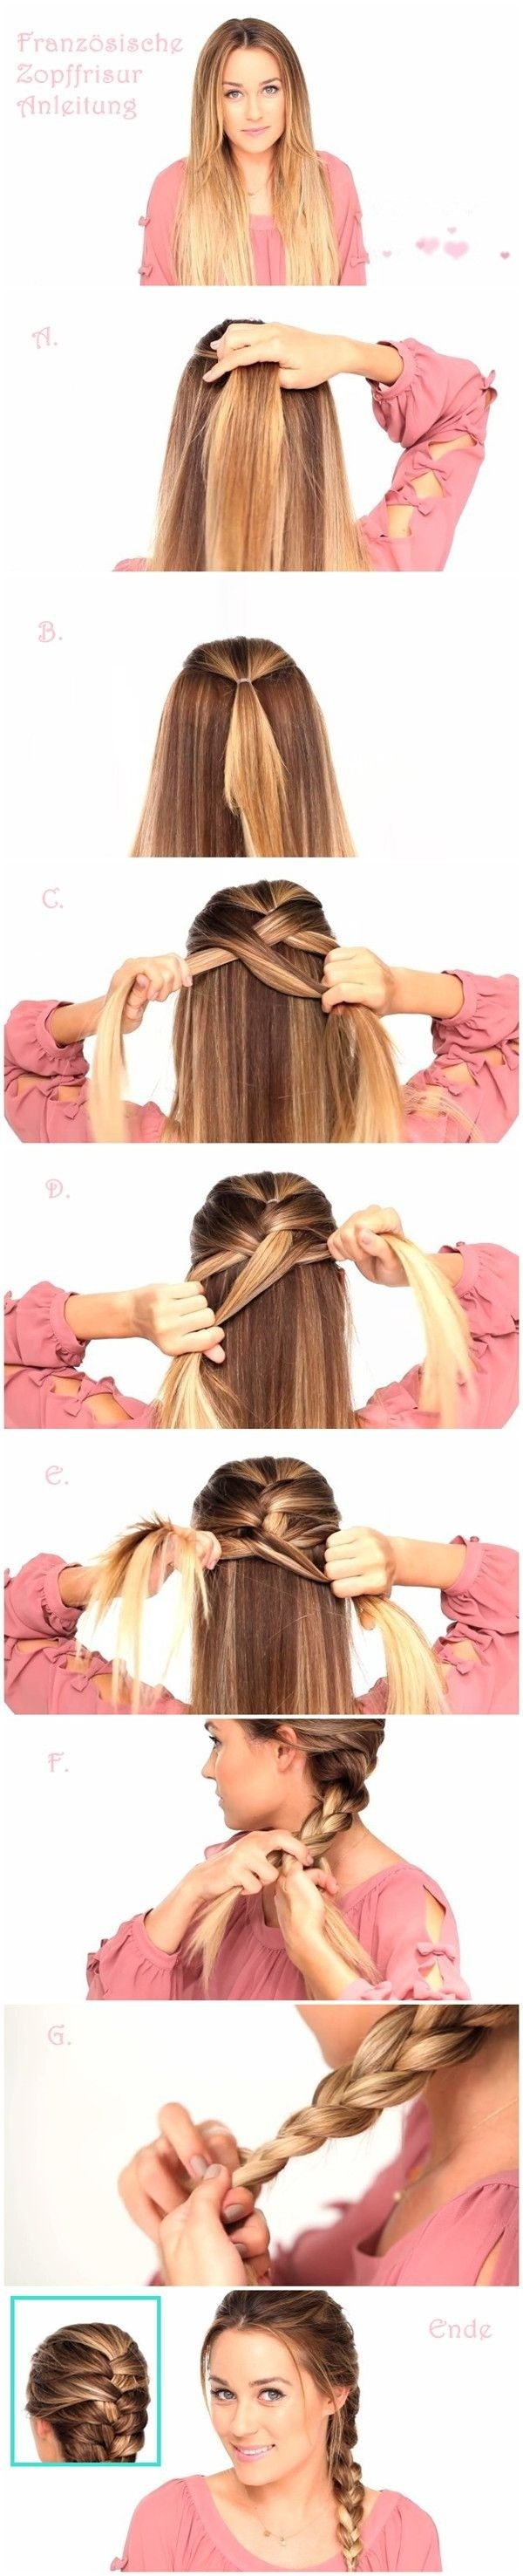 276 best hairstyles for medium length hair images on pinterest 10 french braids hairstyles tutorials everyday hair styles solutioingenieria Image collections